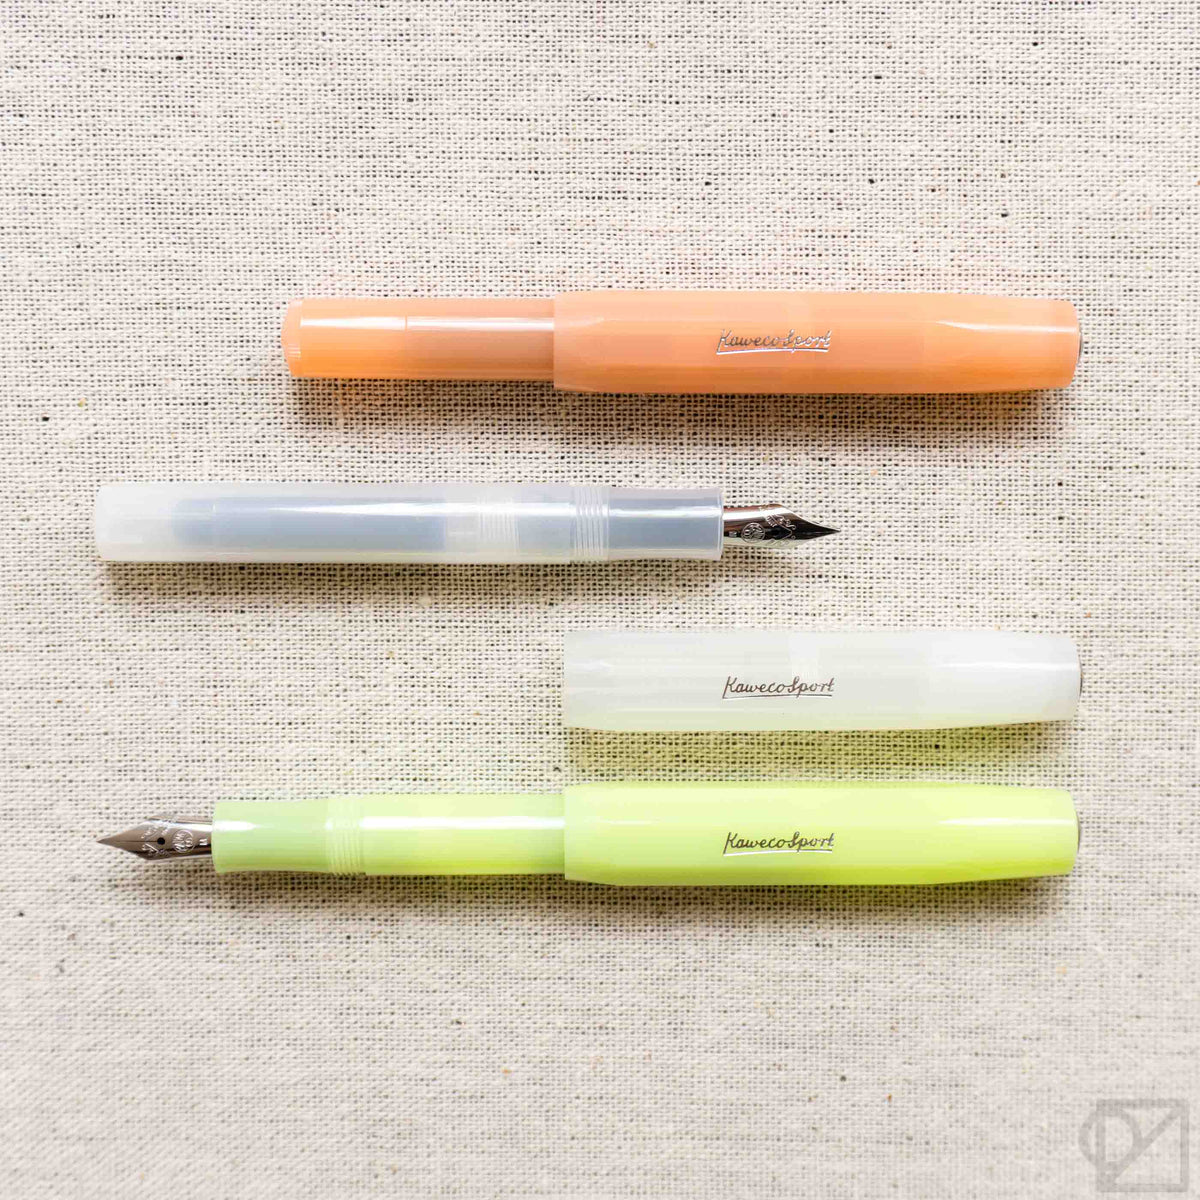 Kaweco Frosted Sport Fountain Pens